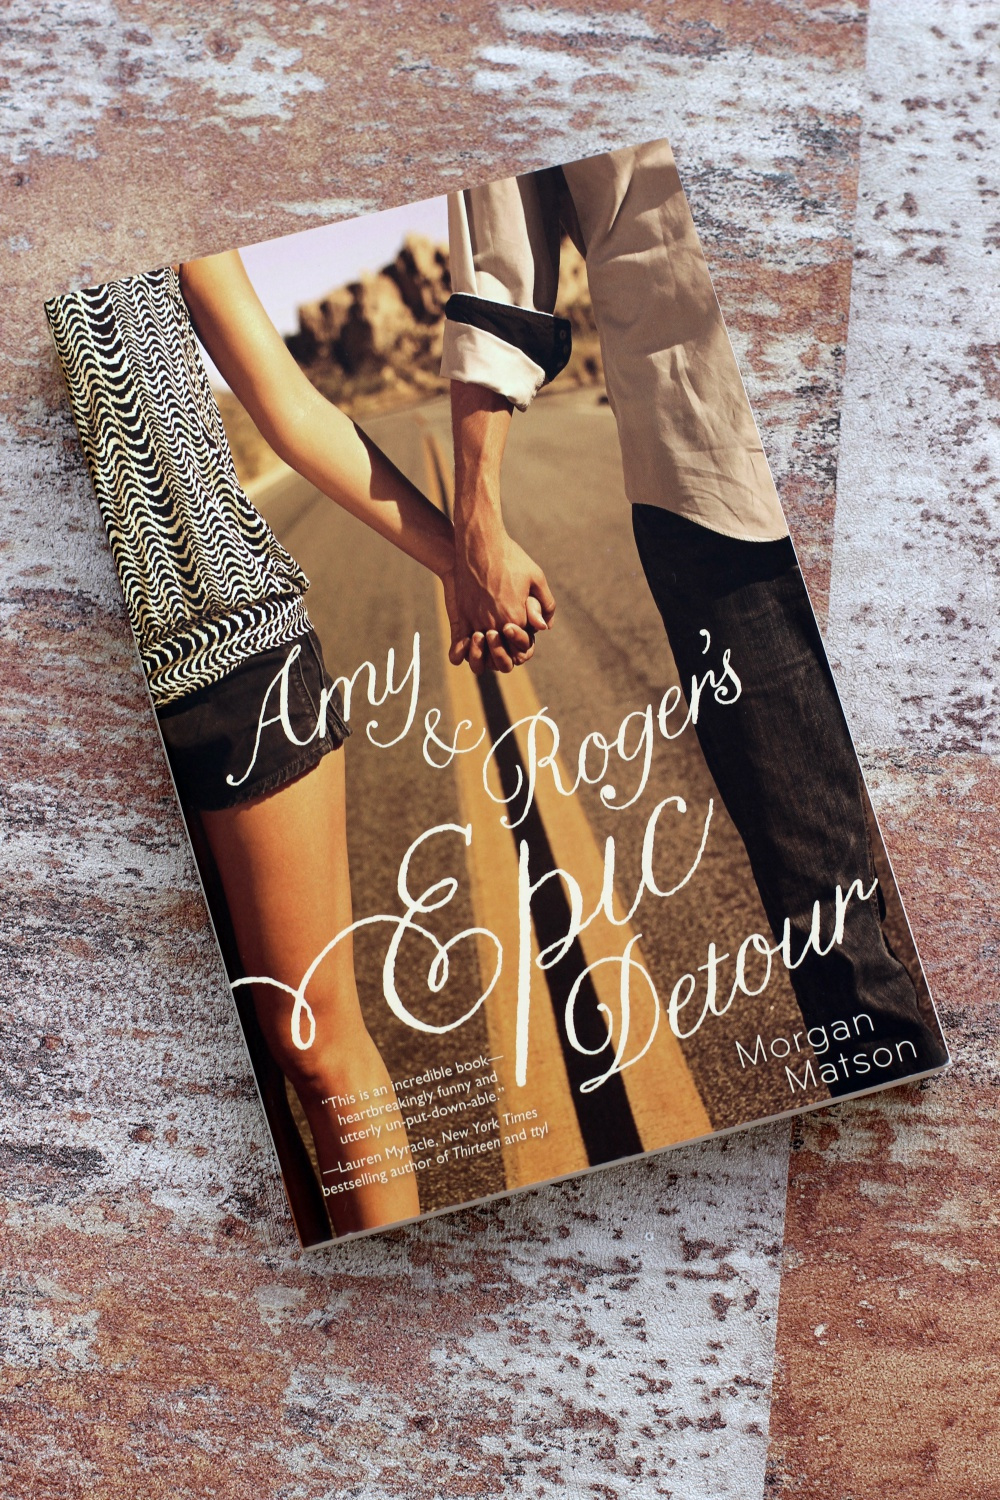 Amy & Roger's Epic Detour Morgan Matson